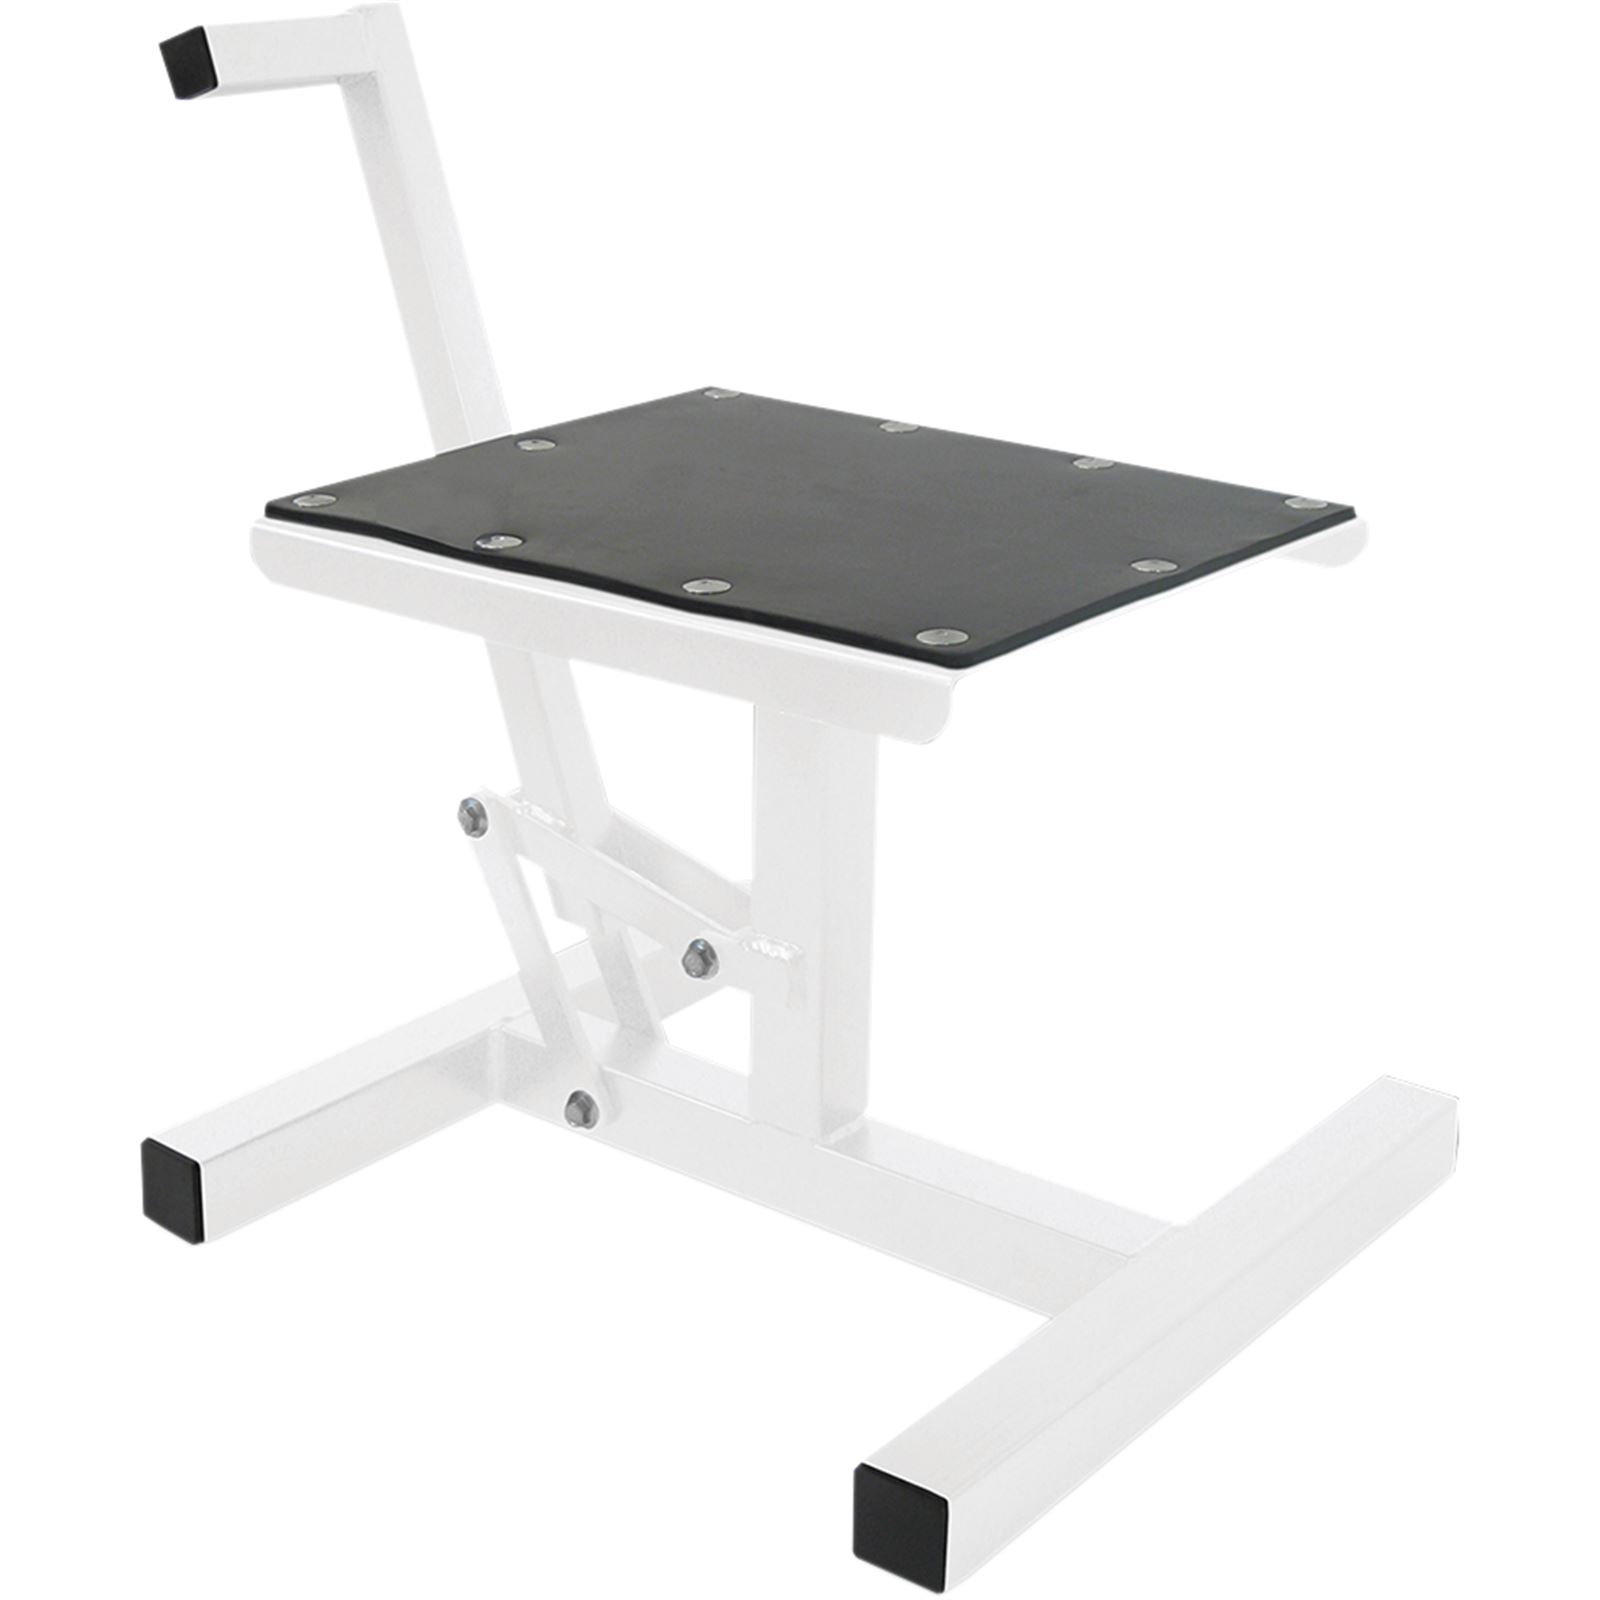 Motorsport Products Stand Lift Economy Steel White